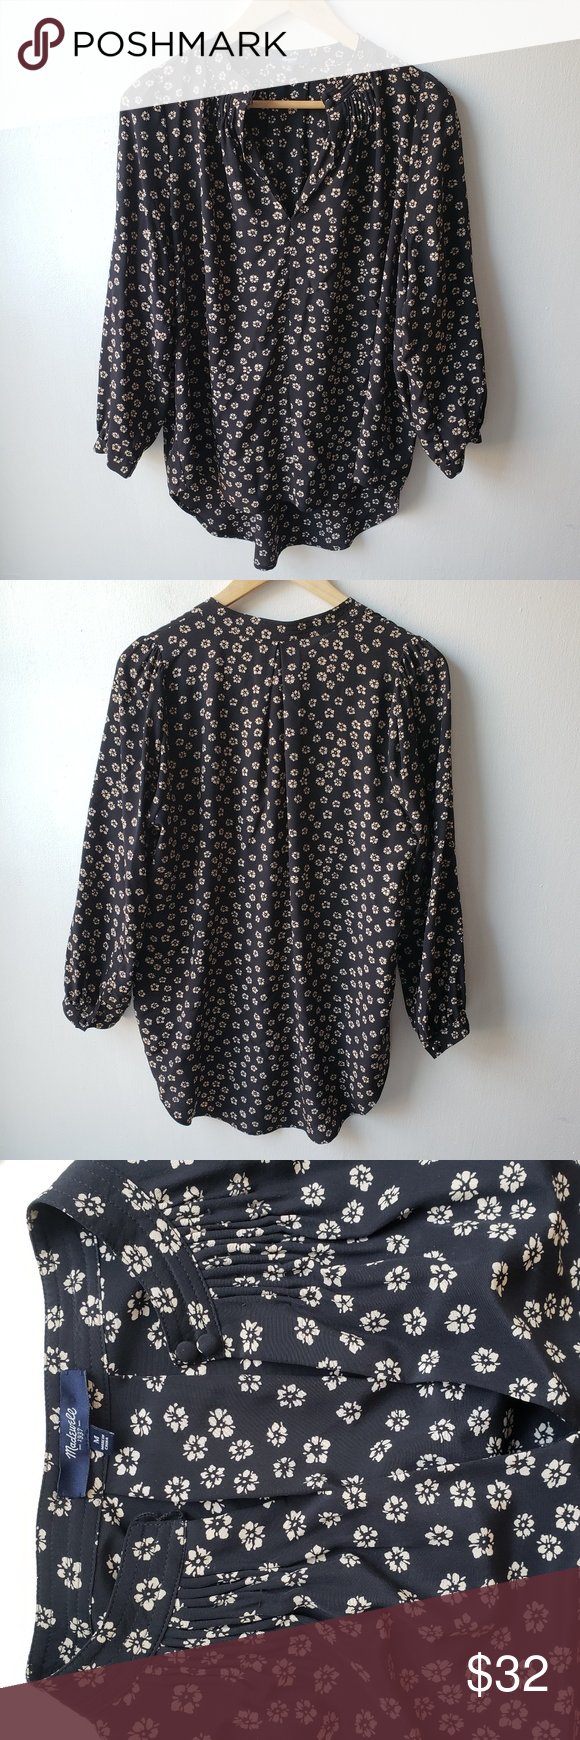 0cf588ecf280c2 Madewell Silk Memory Blouse In Stencil Blossom A lightweight ditsy floral  print enlivens a flouncy silk